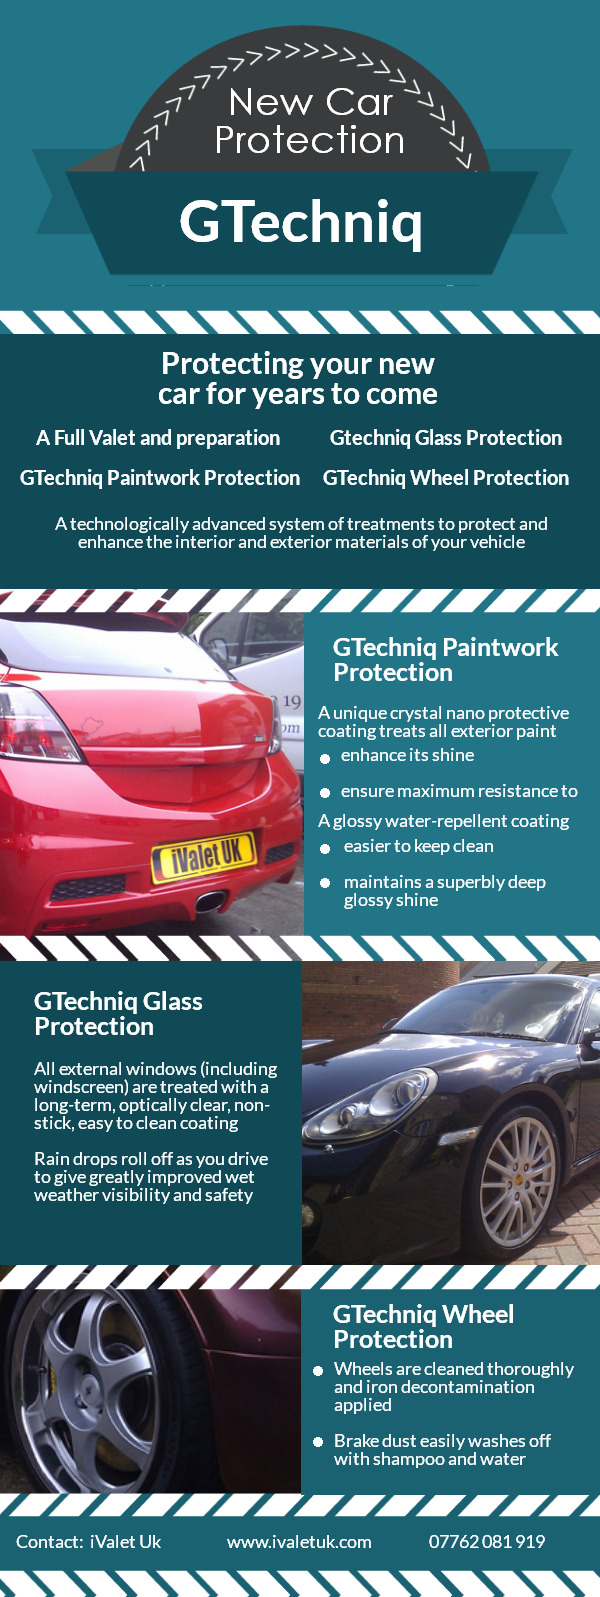 New Car Protection Infographic Ivalet Uk